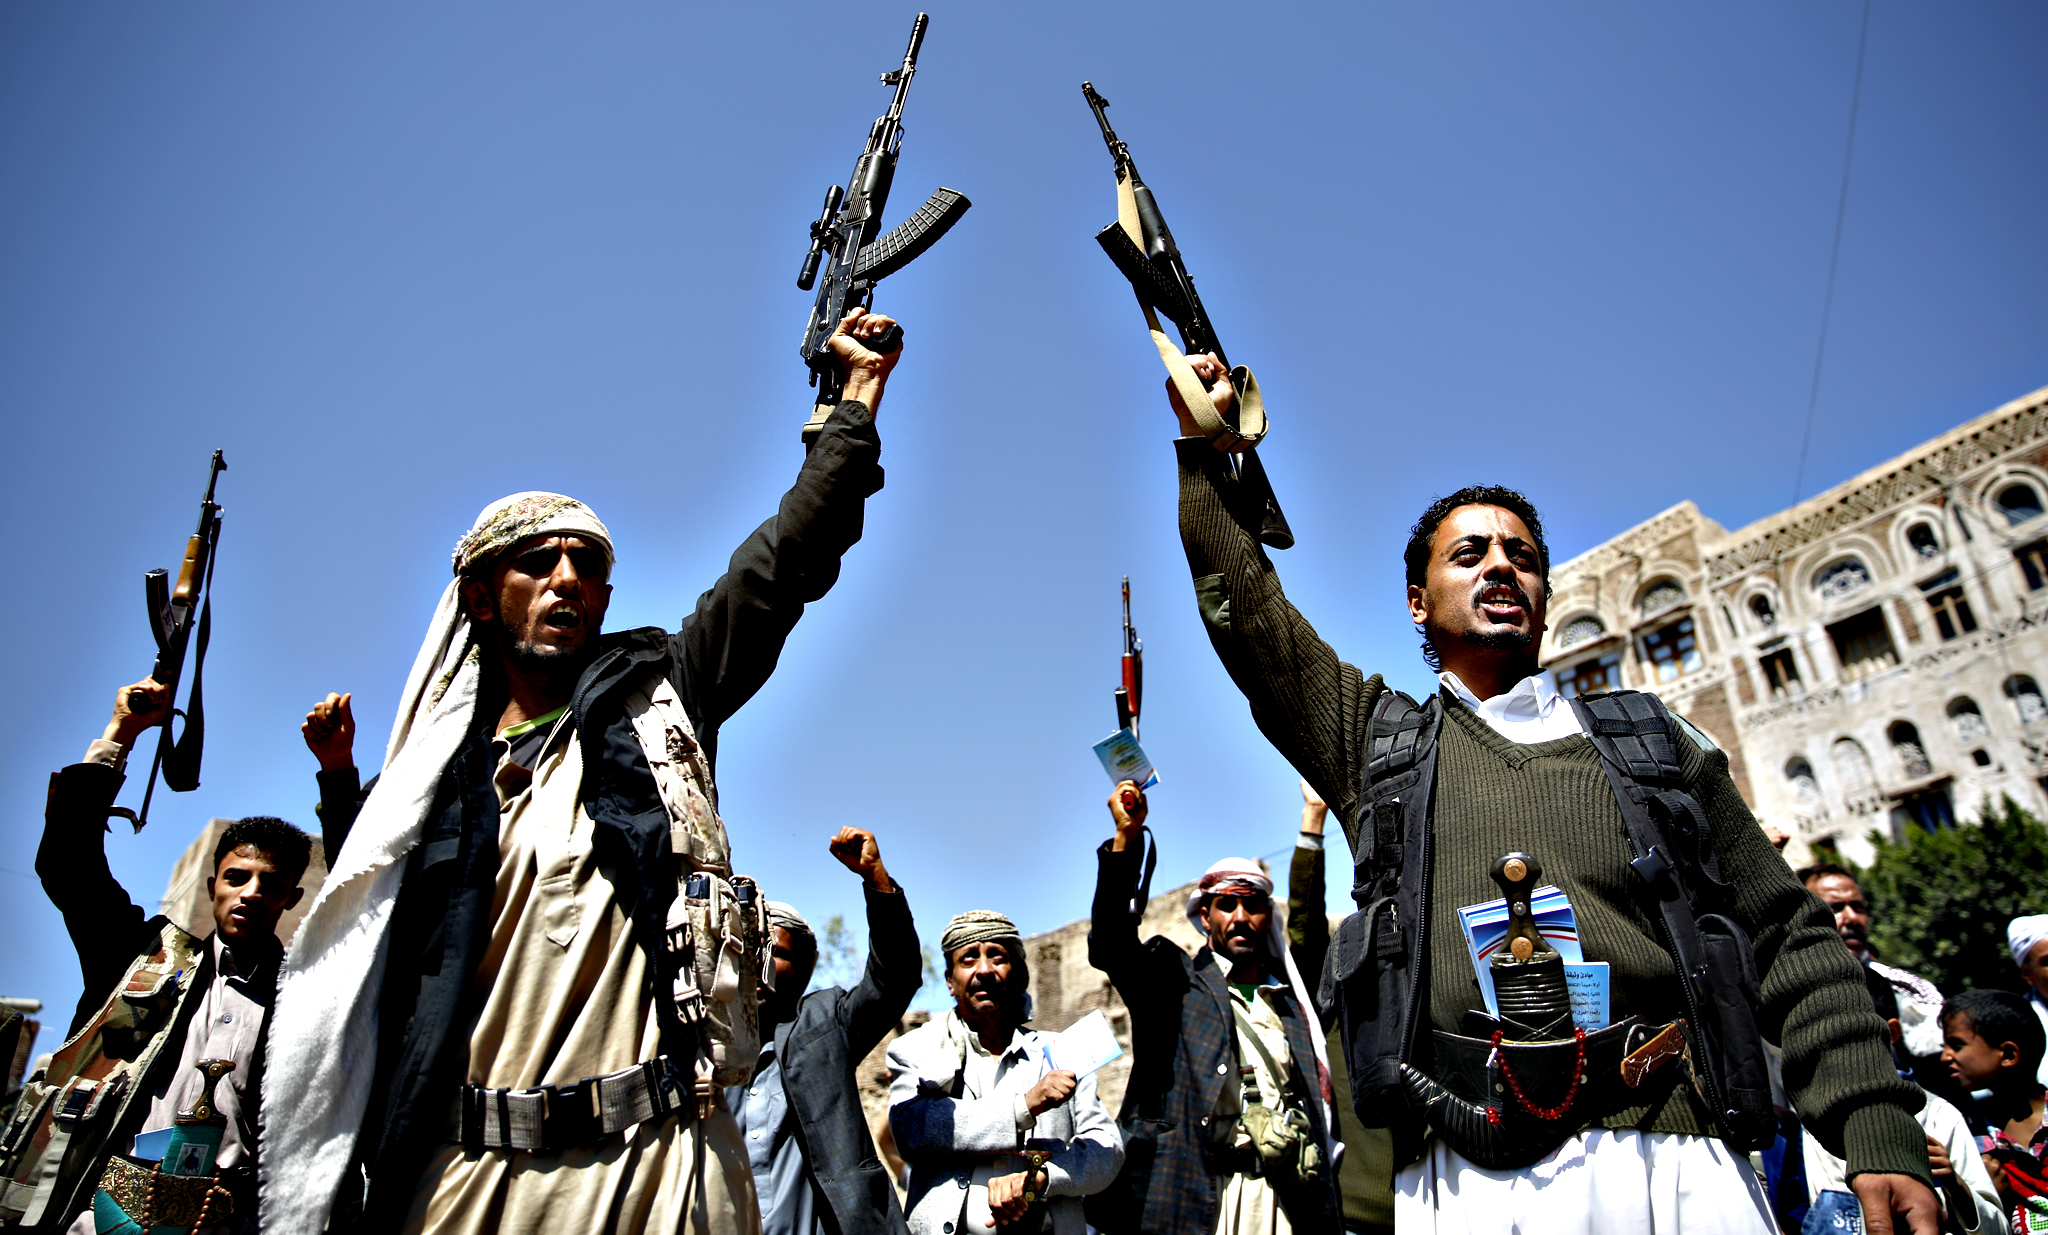 Shiite fighters, known as Houthis, holding their weapons chant slogans during a tribal gathering showing support to the Houthi movement in Sanaa, Yemen, Thursday, Oct. 22, 2015